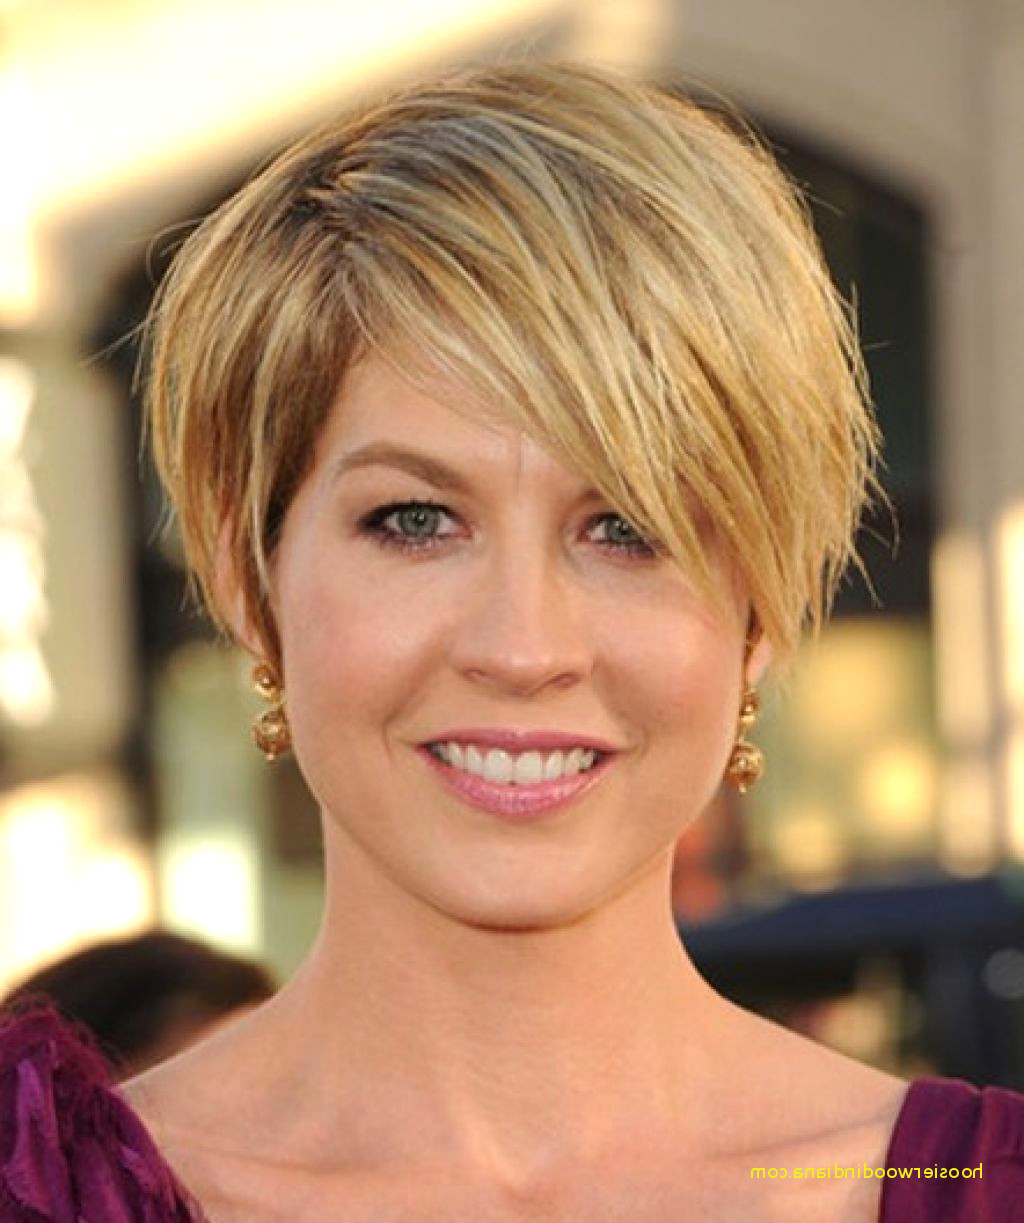 Top Result 57 Best Of Short Hairstyles For Ladies Over 50 In Short Haircuts For Women 50 And Over (View 22 of 25)